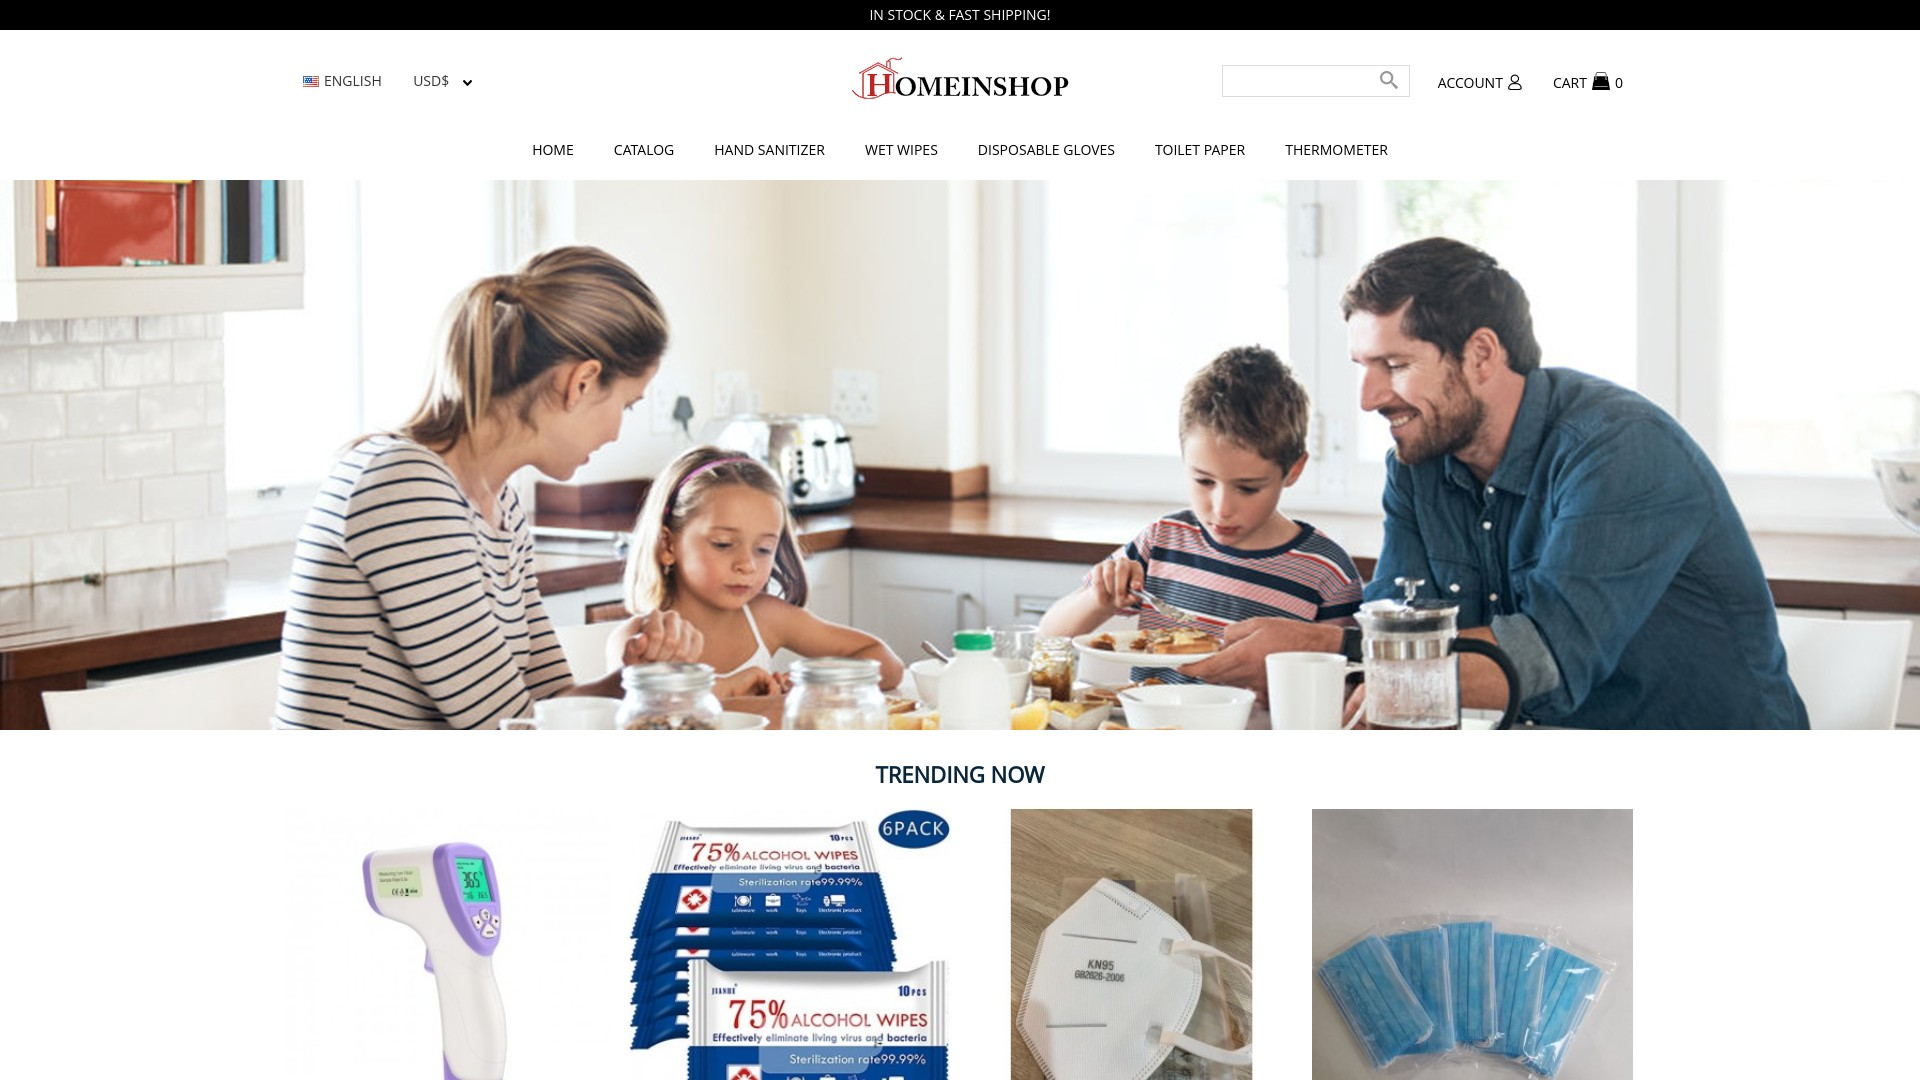 Is Homeinshop a Scam? See the Review of the Online Store